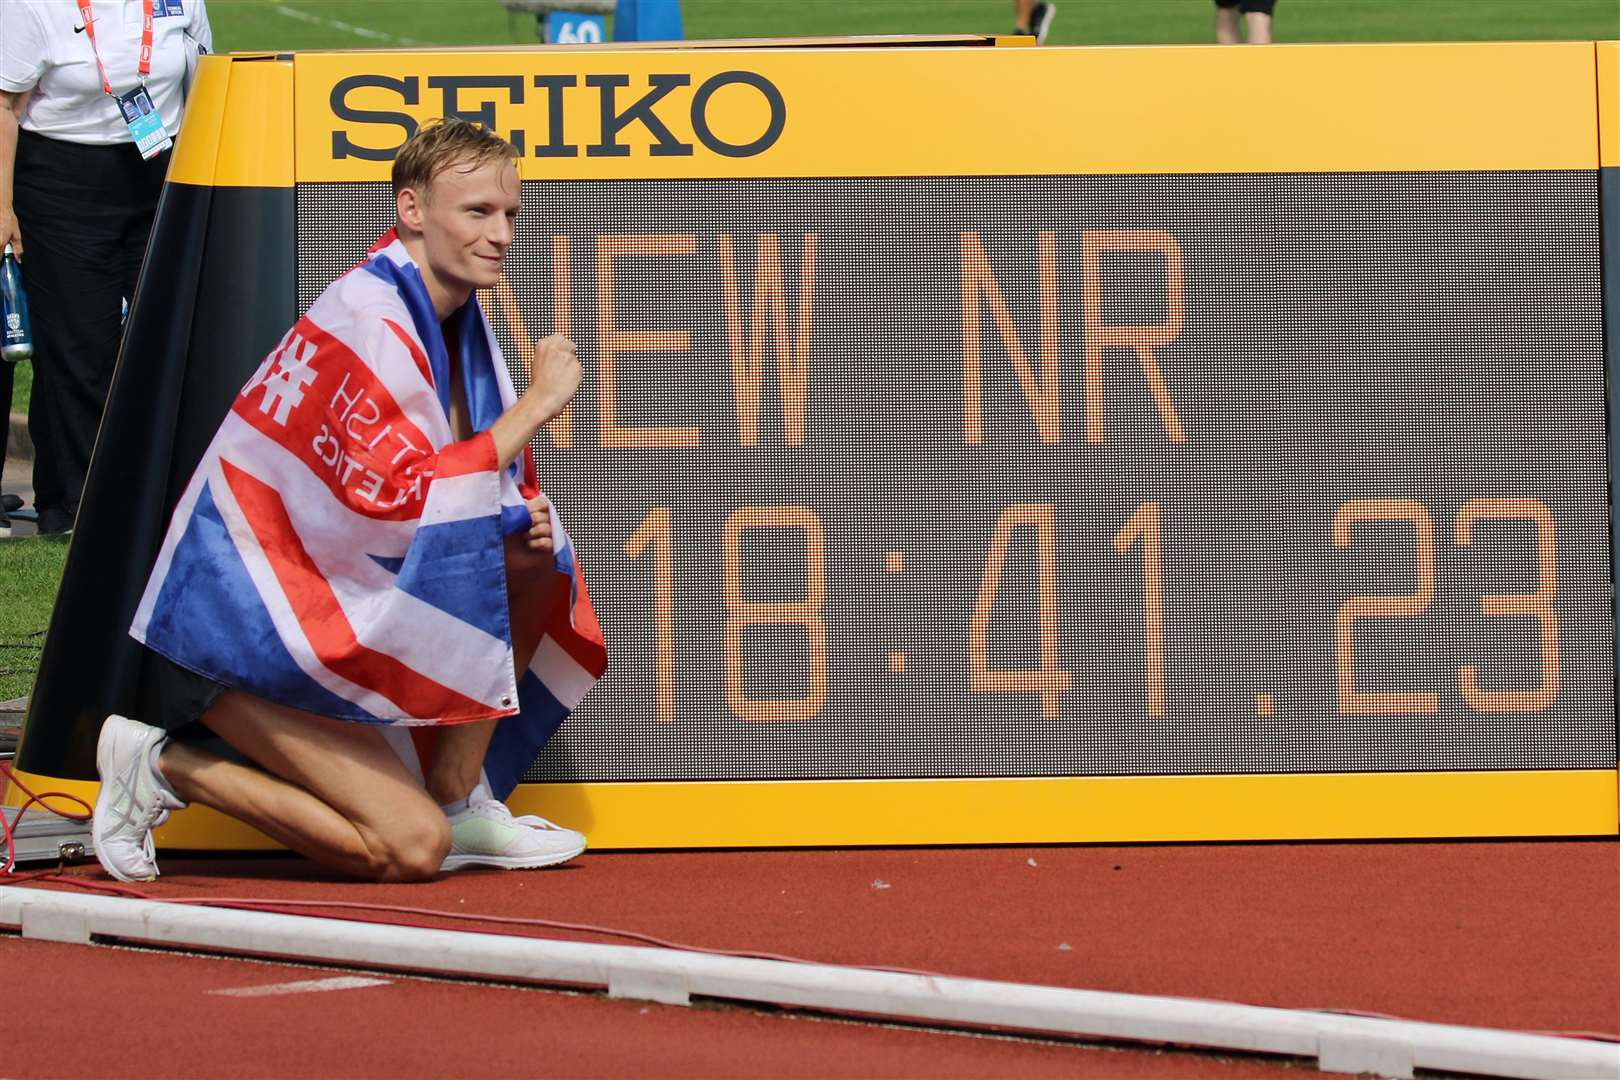 Callum Wikinson broke the national record at Birmingham. Picture: Mark Easton (15735529)